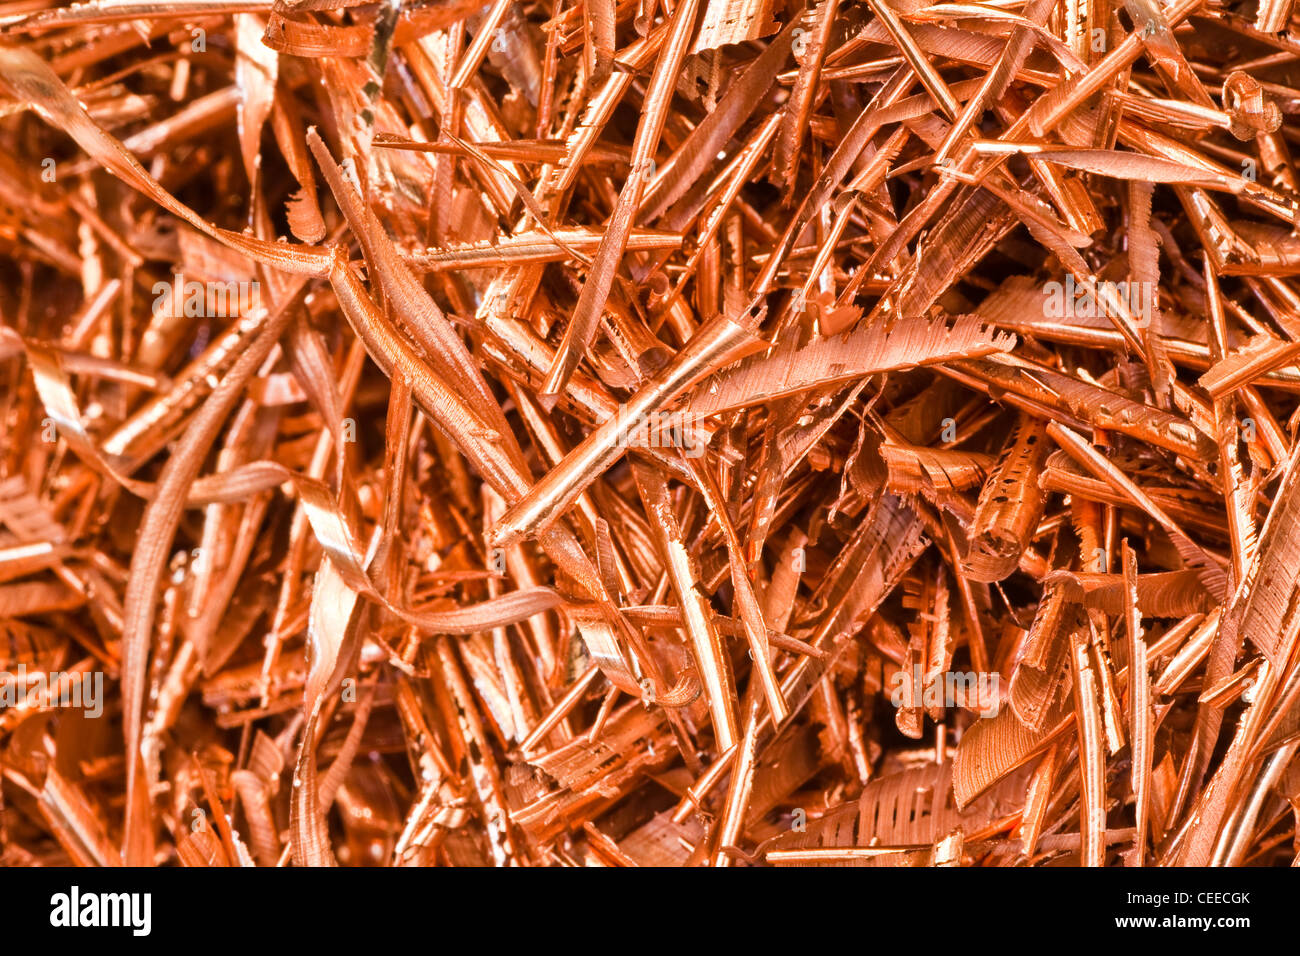 Abstract image of copper machining swarf - Stock Image